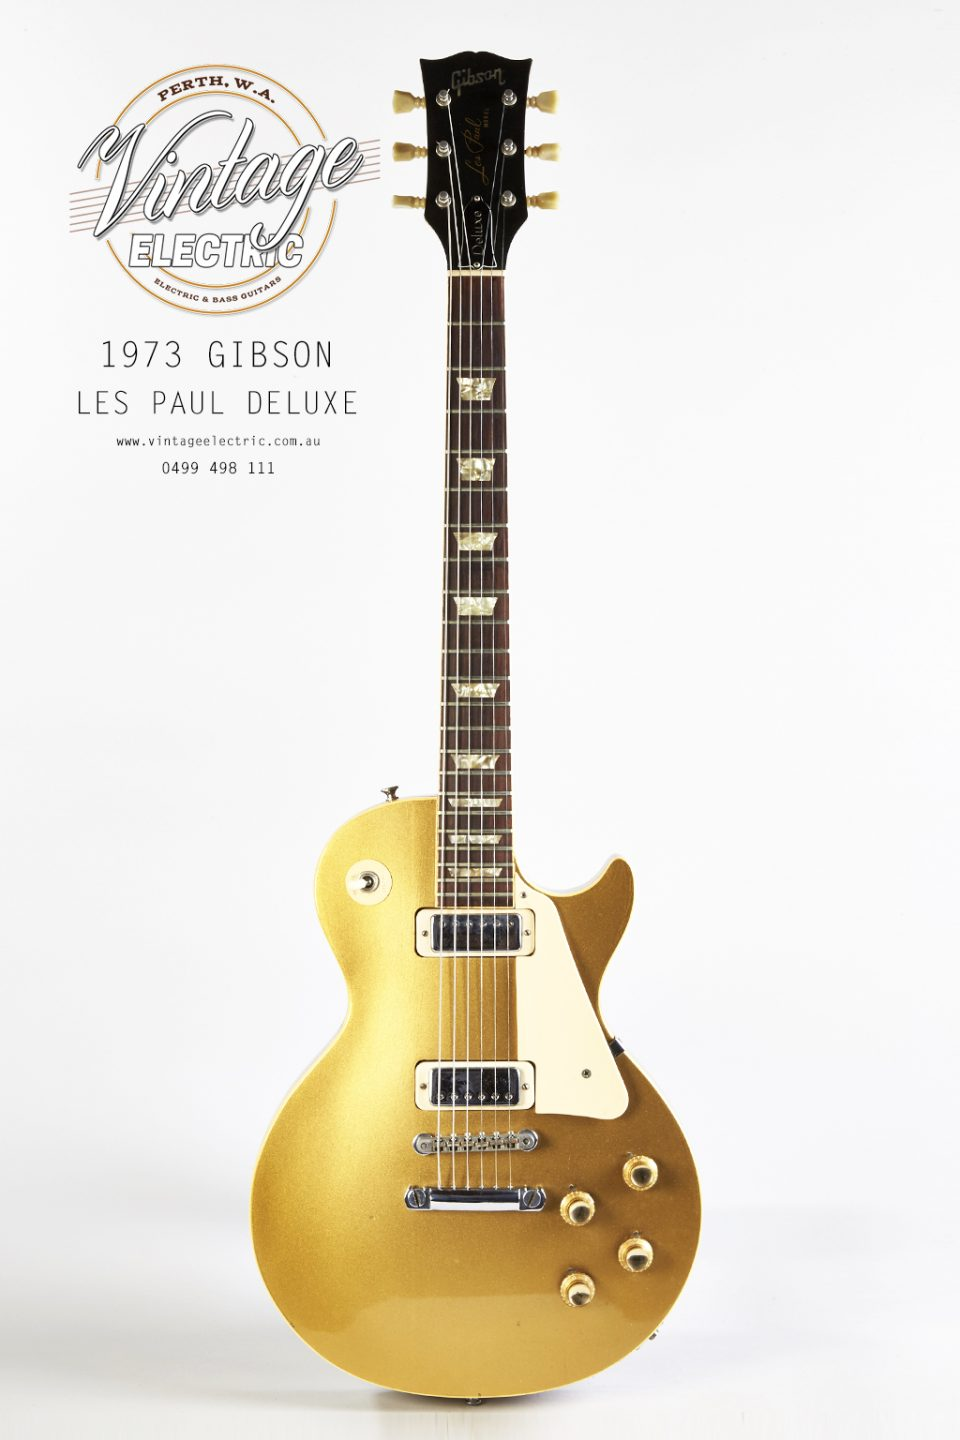 1973 Gibson Les Paul Deluxe Gold Top